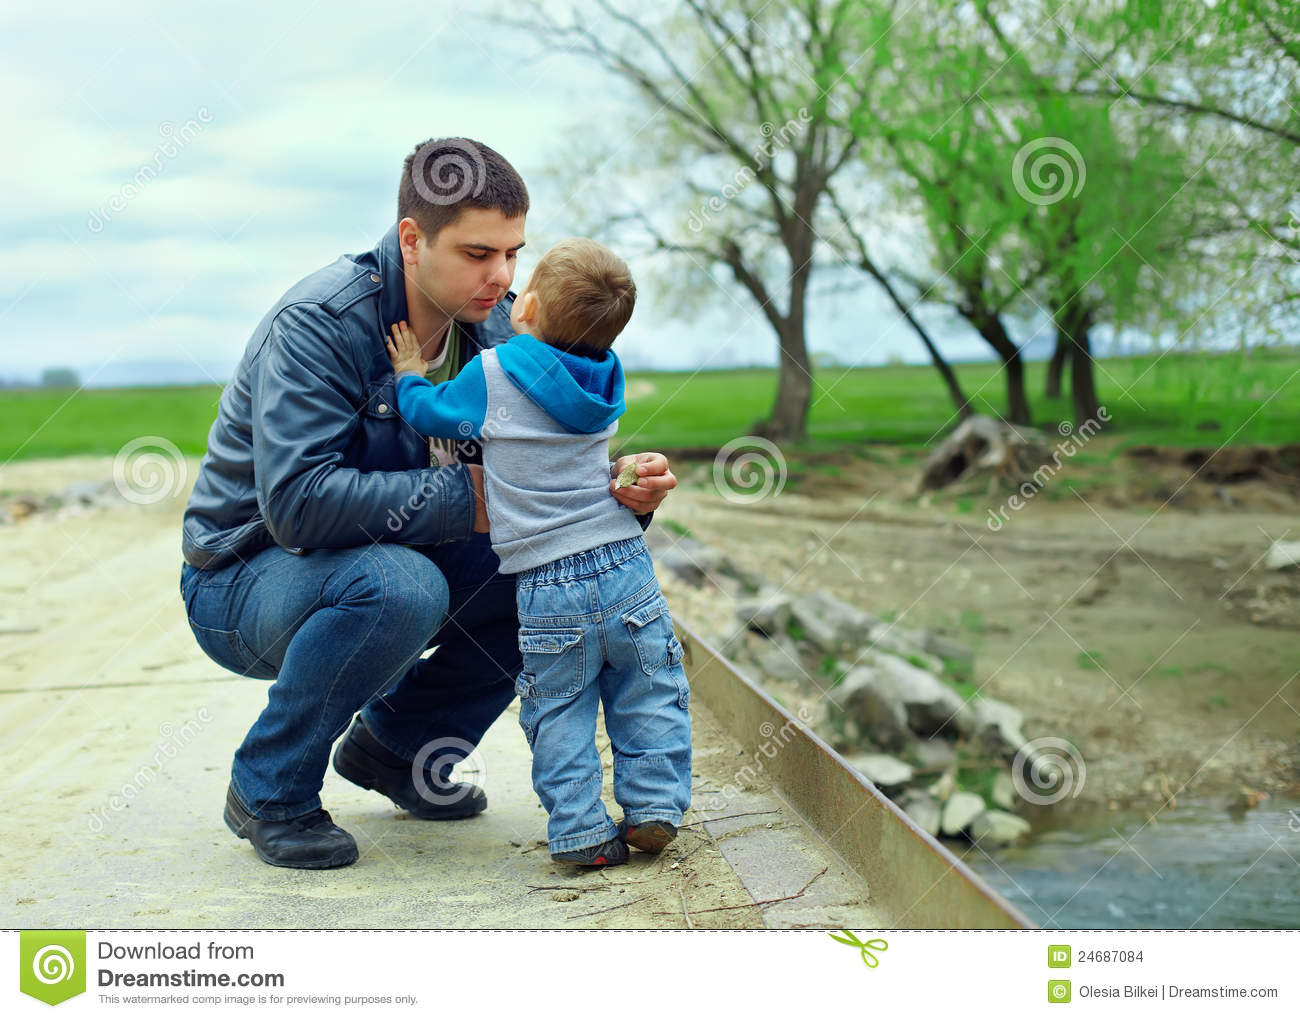 the sons relationship with father